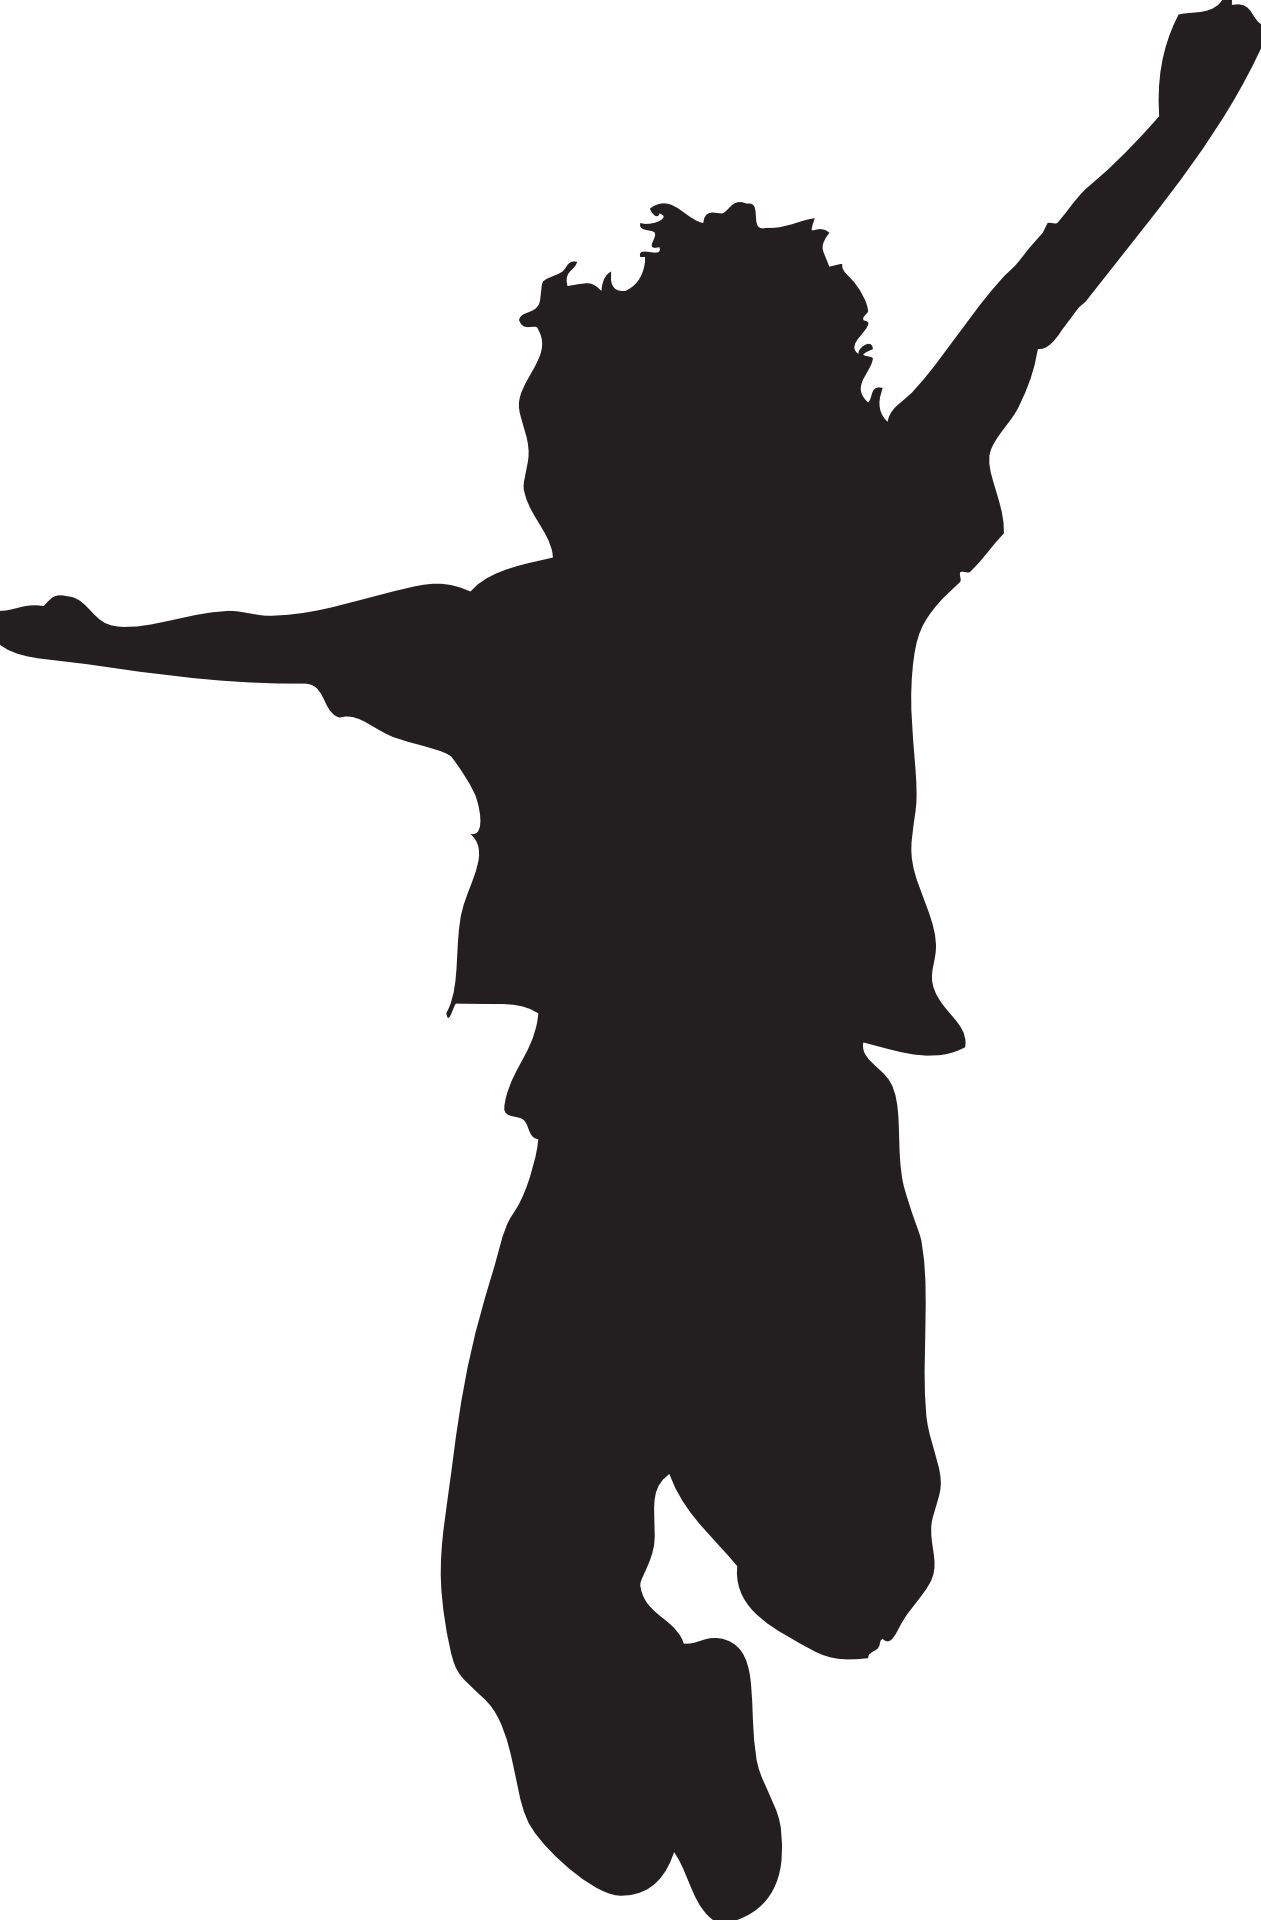 Jumping Silhouette Clipart.